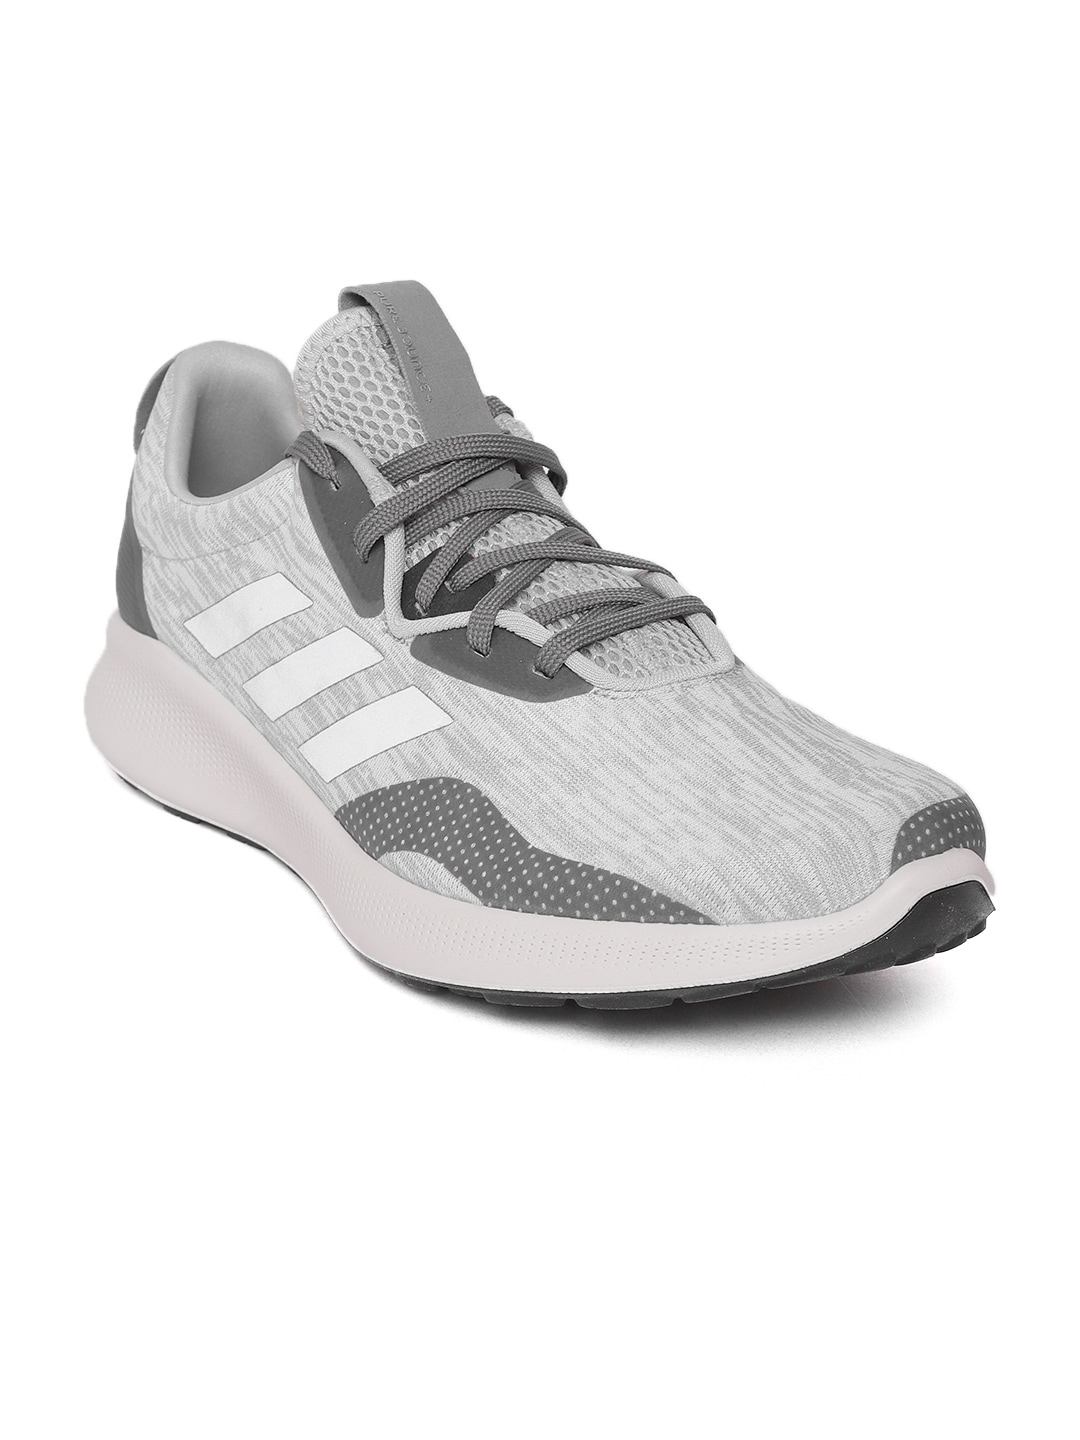 premium selection 758e1 1780d Sports Shoes for Men - Buy Men Sports Shoes Online in India - Myntra